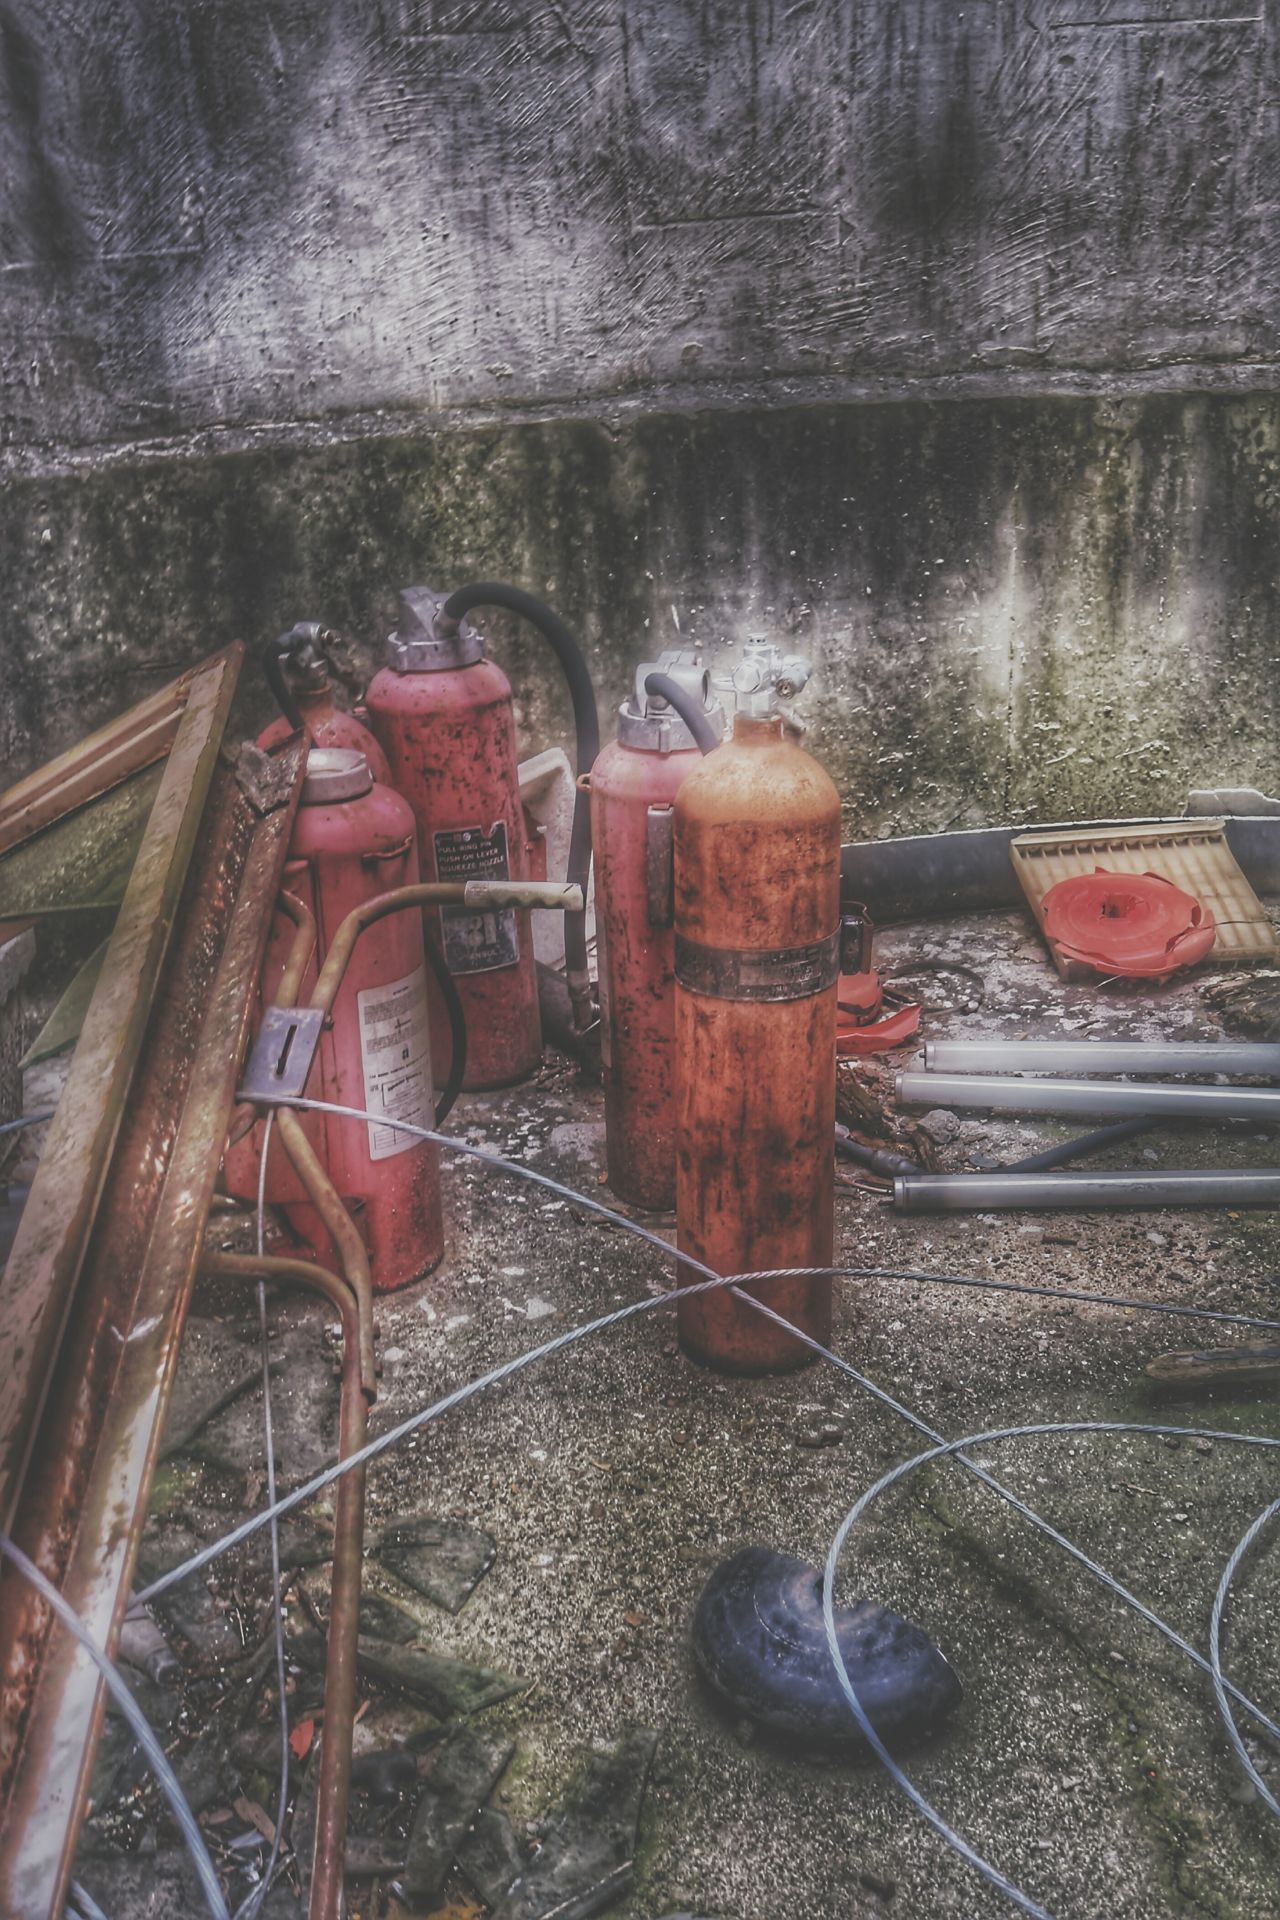 EyeEm HDR Enjoying Life Notes From The Underground Abandoned Building Close-up Abandoned Red Check This Out Lights And Shadows Urbanexploration Eye4photography  EyeEm Team EyeEmBestPics EyeEm Best Shots EyeEm Best Edits Hdr Collections EyeEm Gallery Urbexexplorer Urbexphotography Hdr_pics Me, My Camera And I Deterioration Textured  Abandoned & Derelict